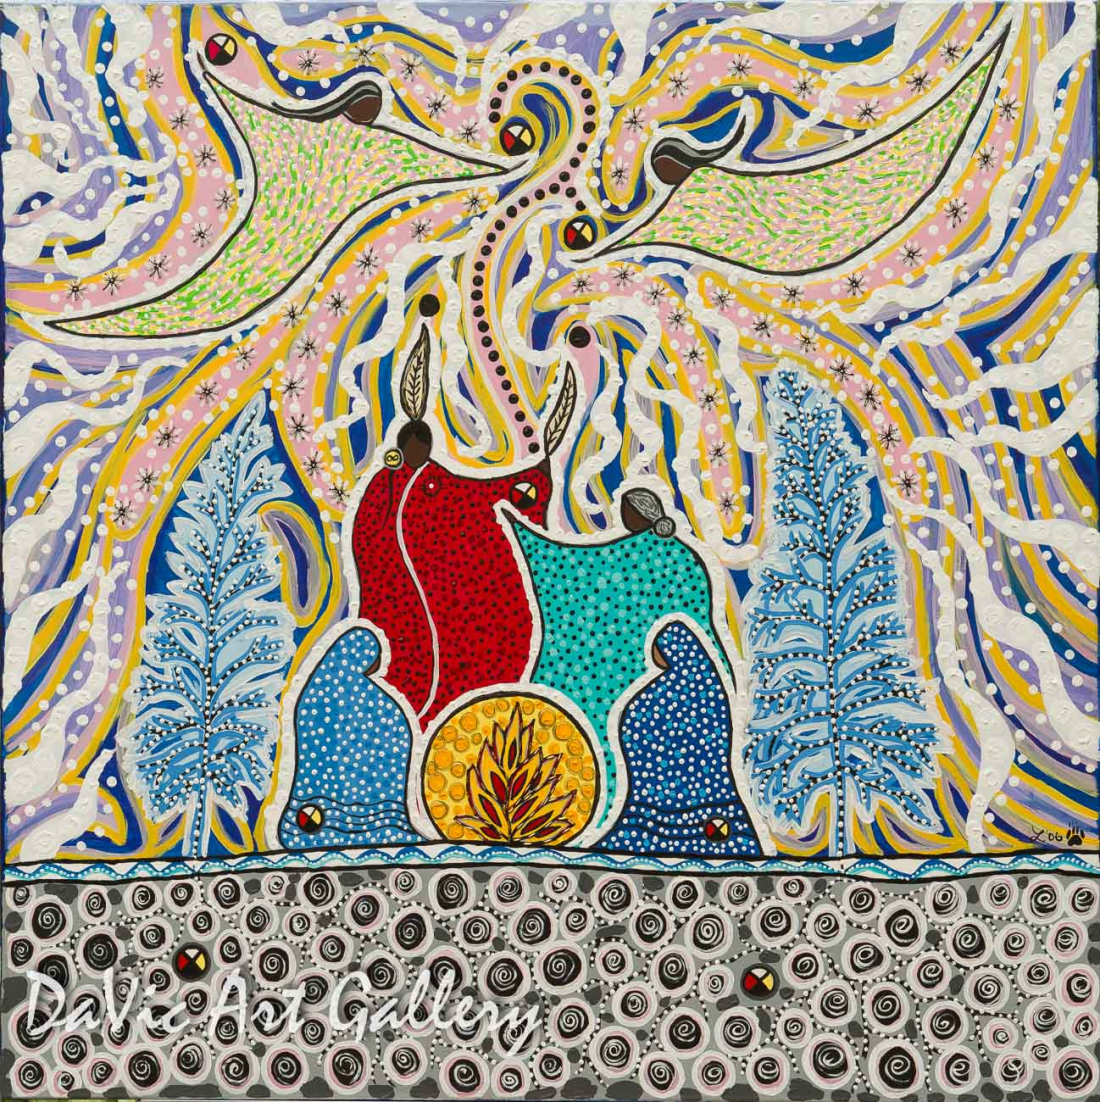 'Winter Spirits Medicine' by First Nations Metis artist Leah Marie Dorion